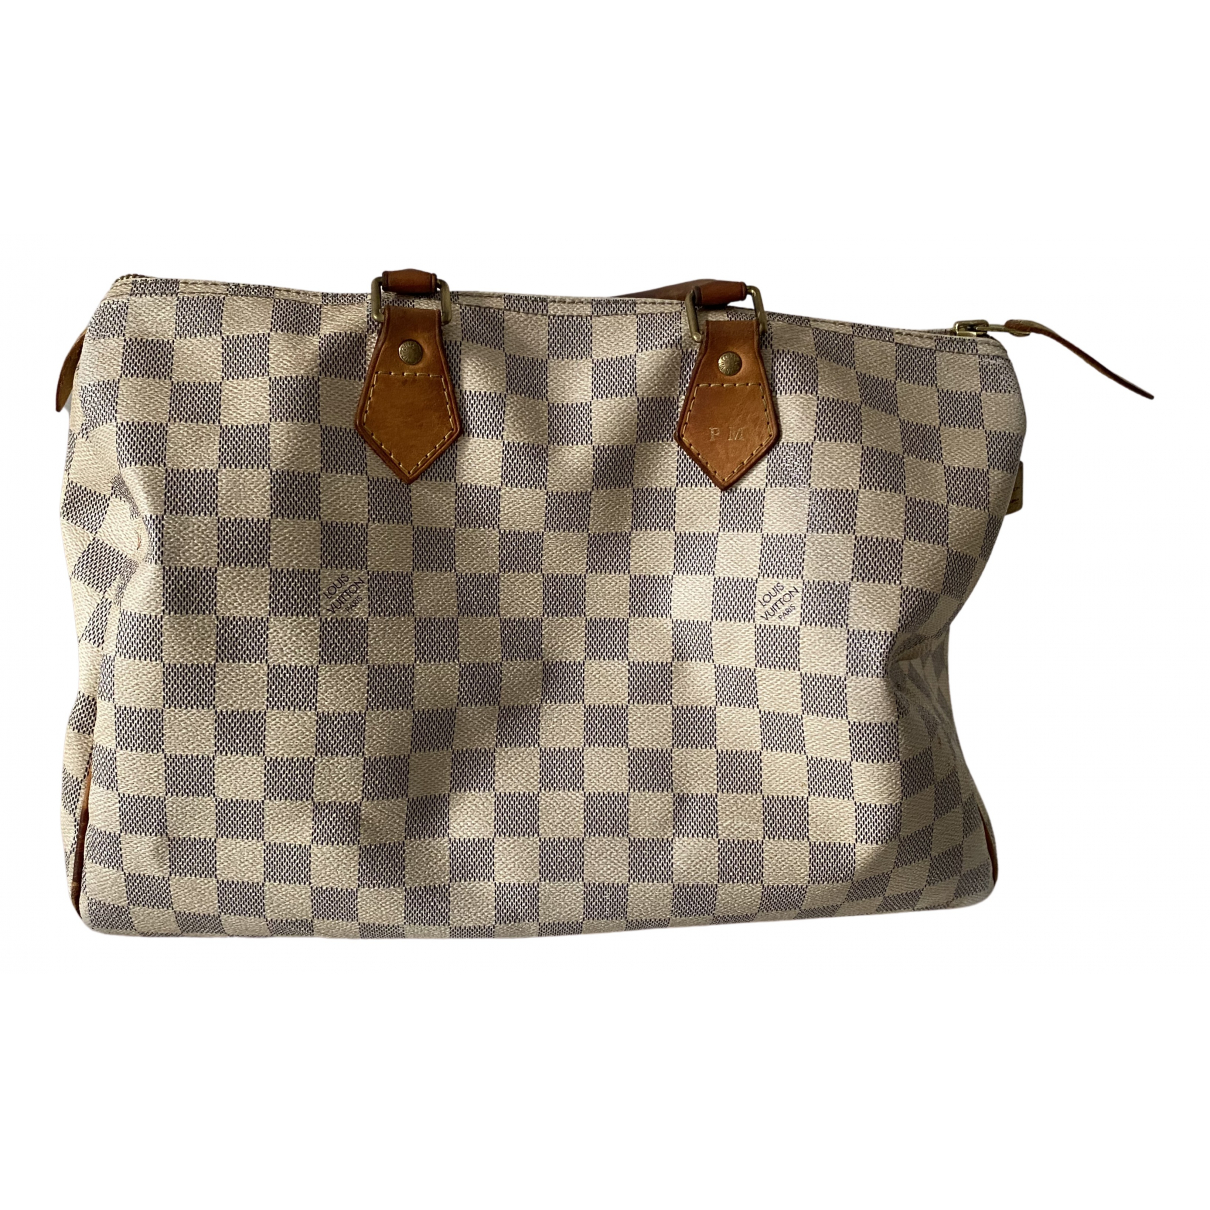 Louis Vuitton Speedy Handtasche in  Weiss Leinen